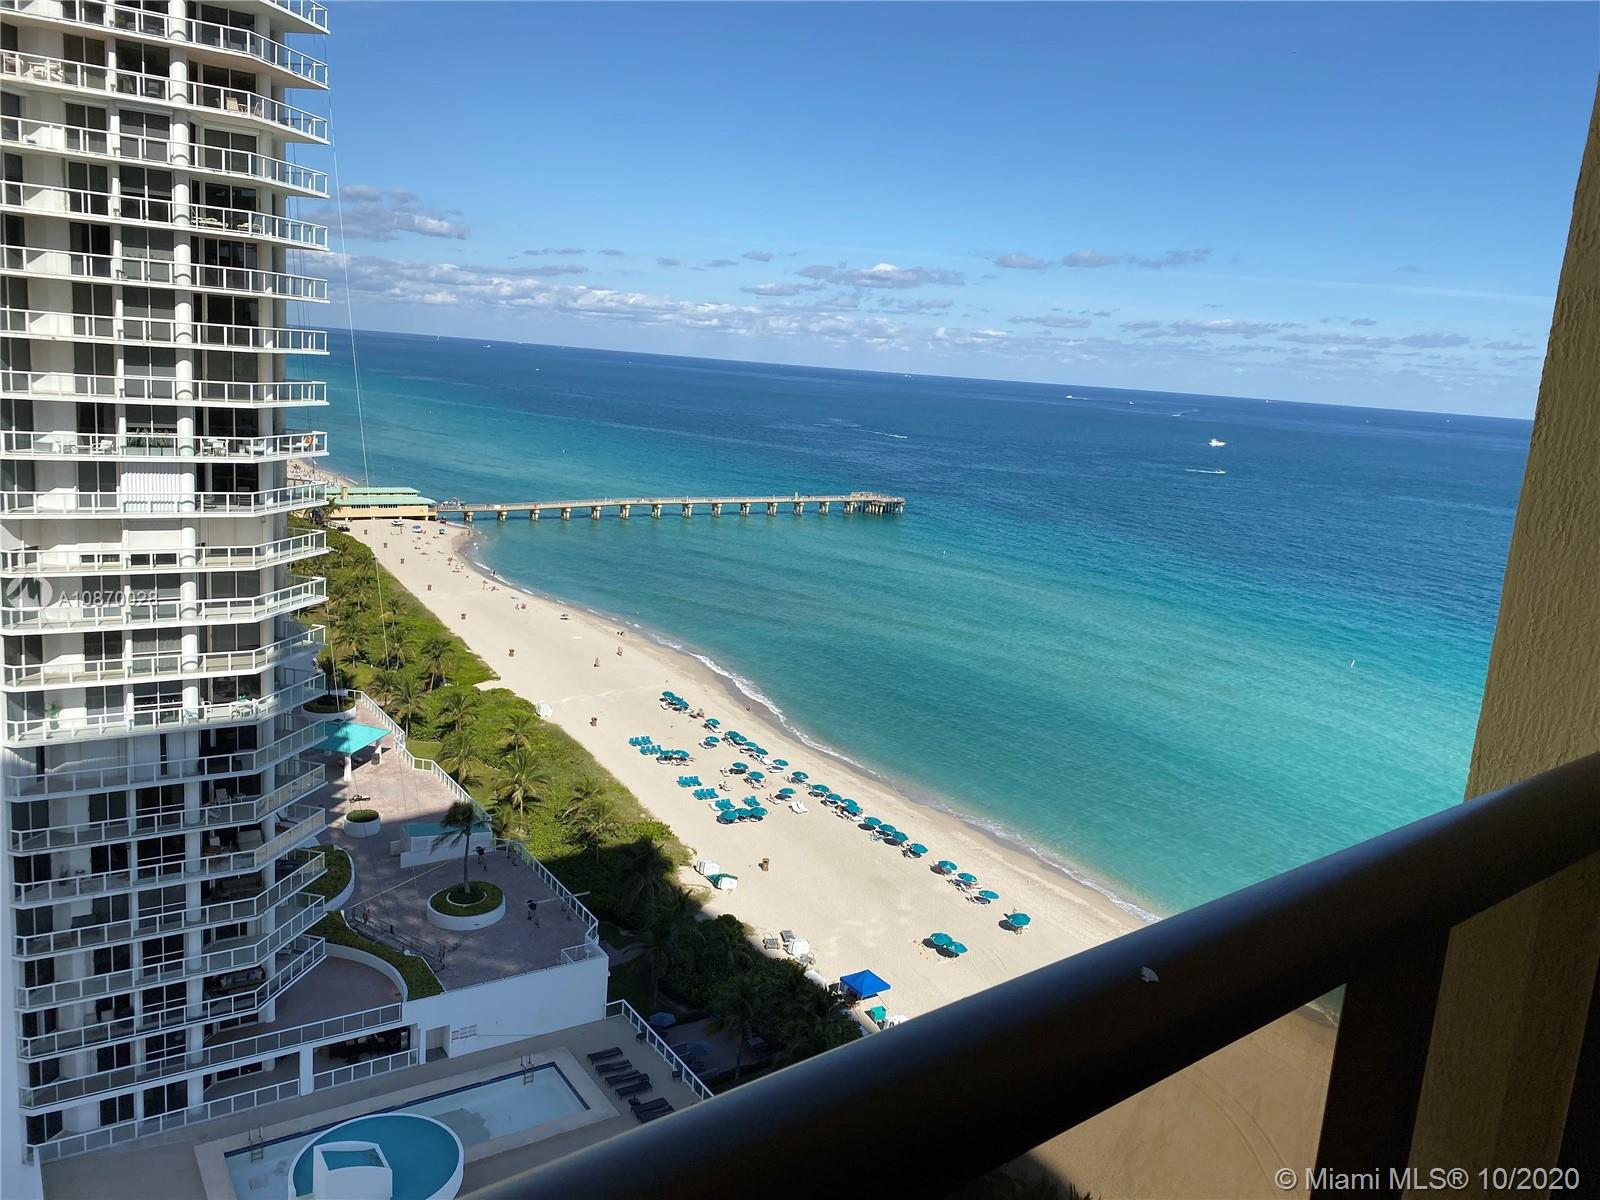 Super spacious and bright unit at Sayan Condo, featuring great amenities and direct access to the ocean and beach service provided by the building. Marble floors, european kitchen cabinets, custom-made closets and more.